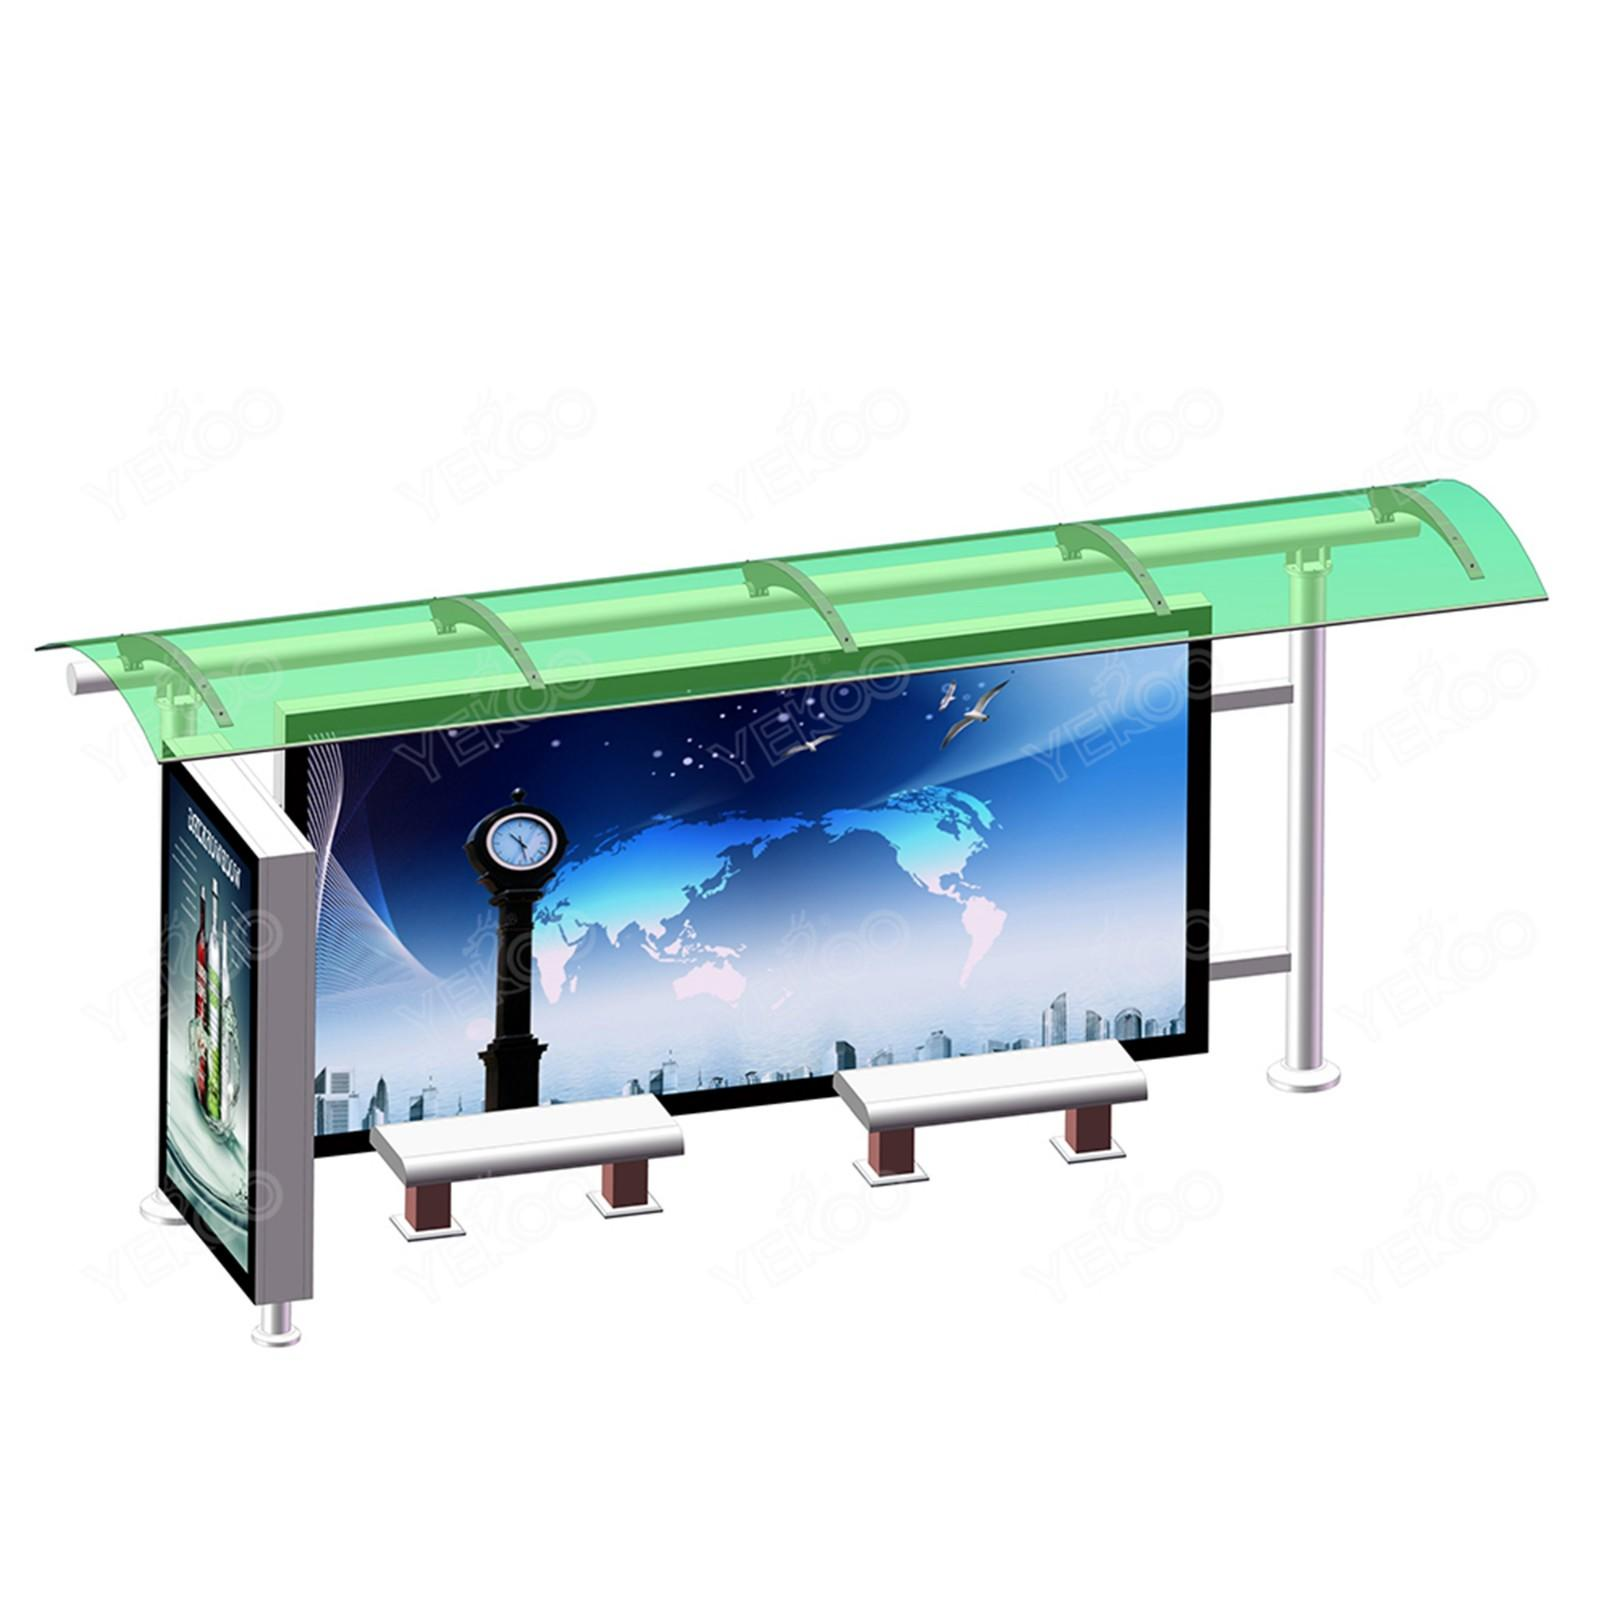 YEROO custom metal bus stop shelter steel structure for outdoor advertising-1